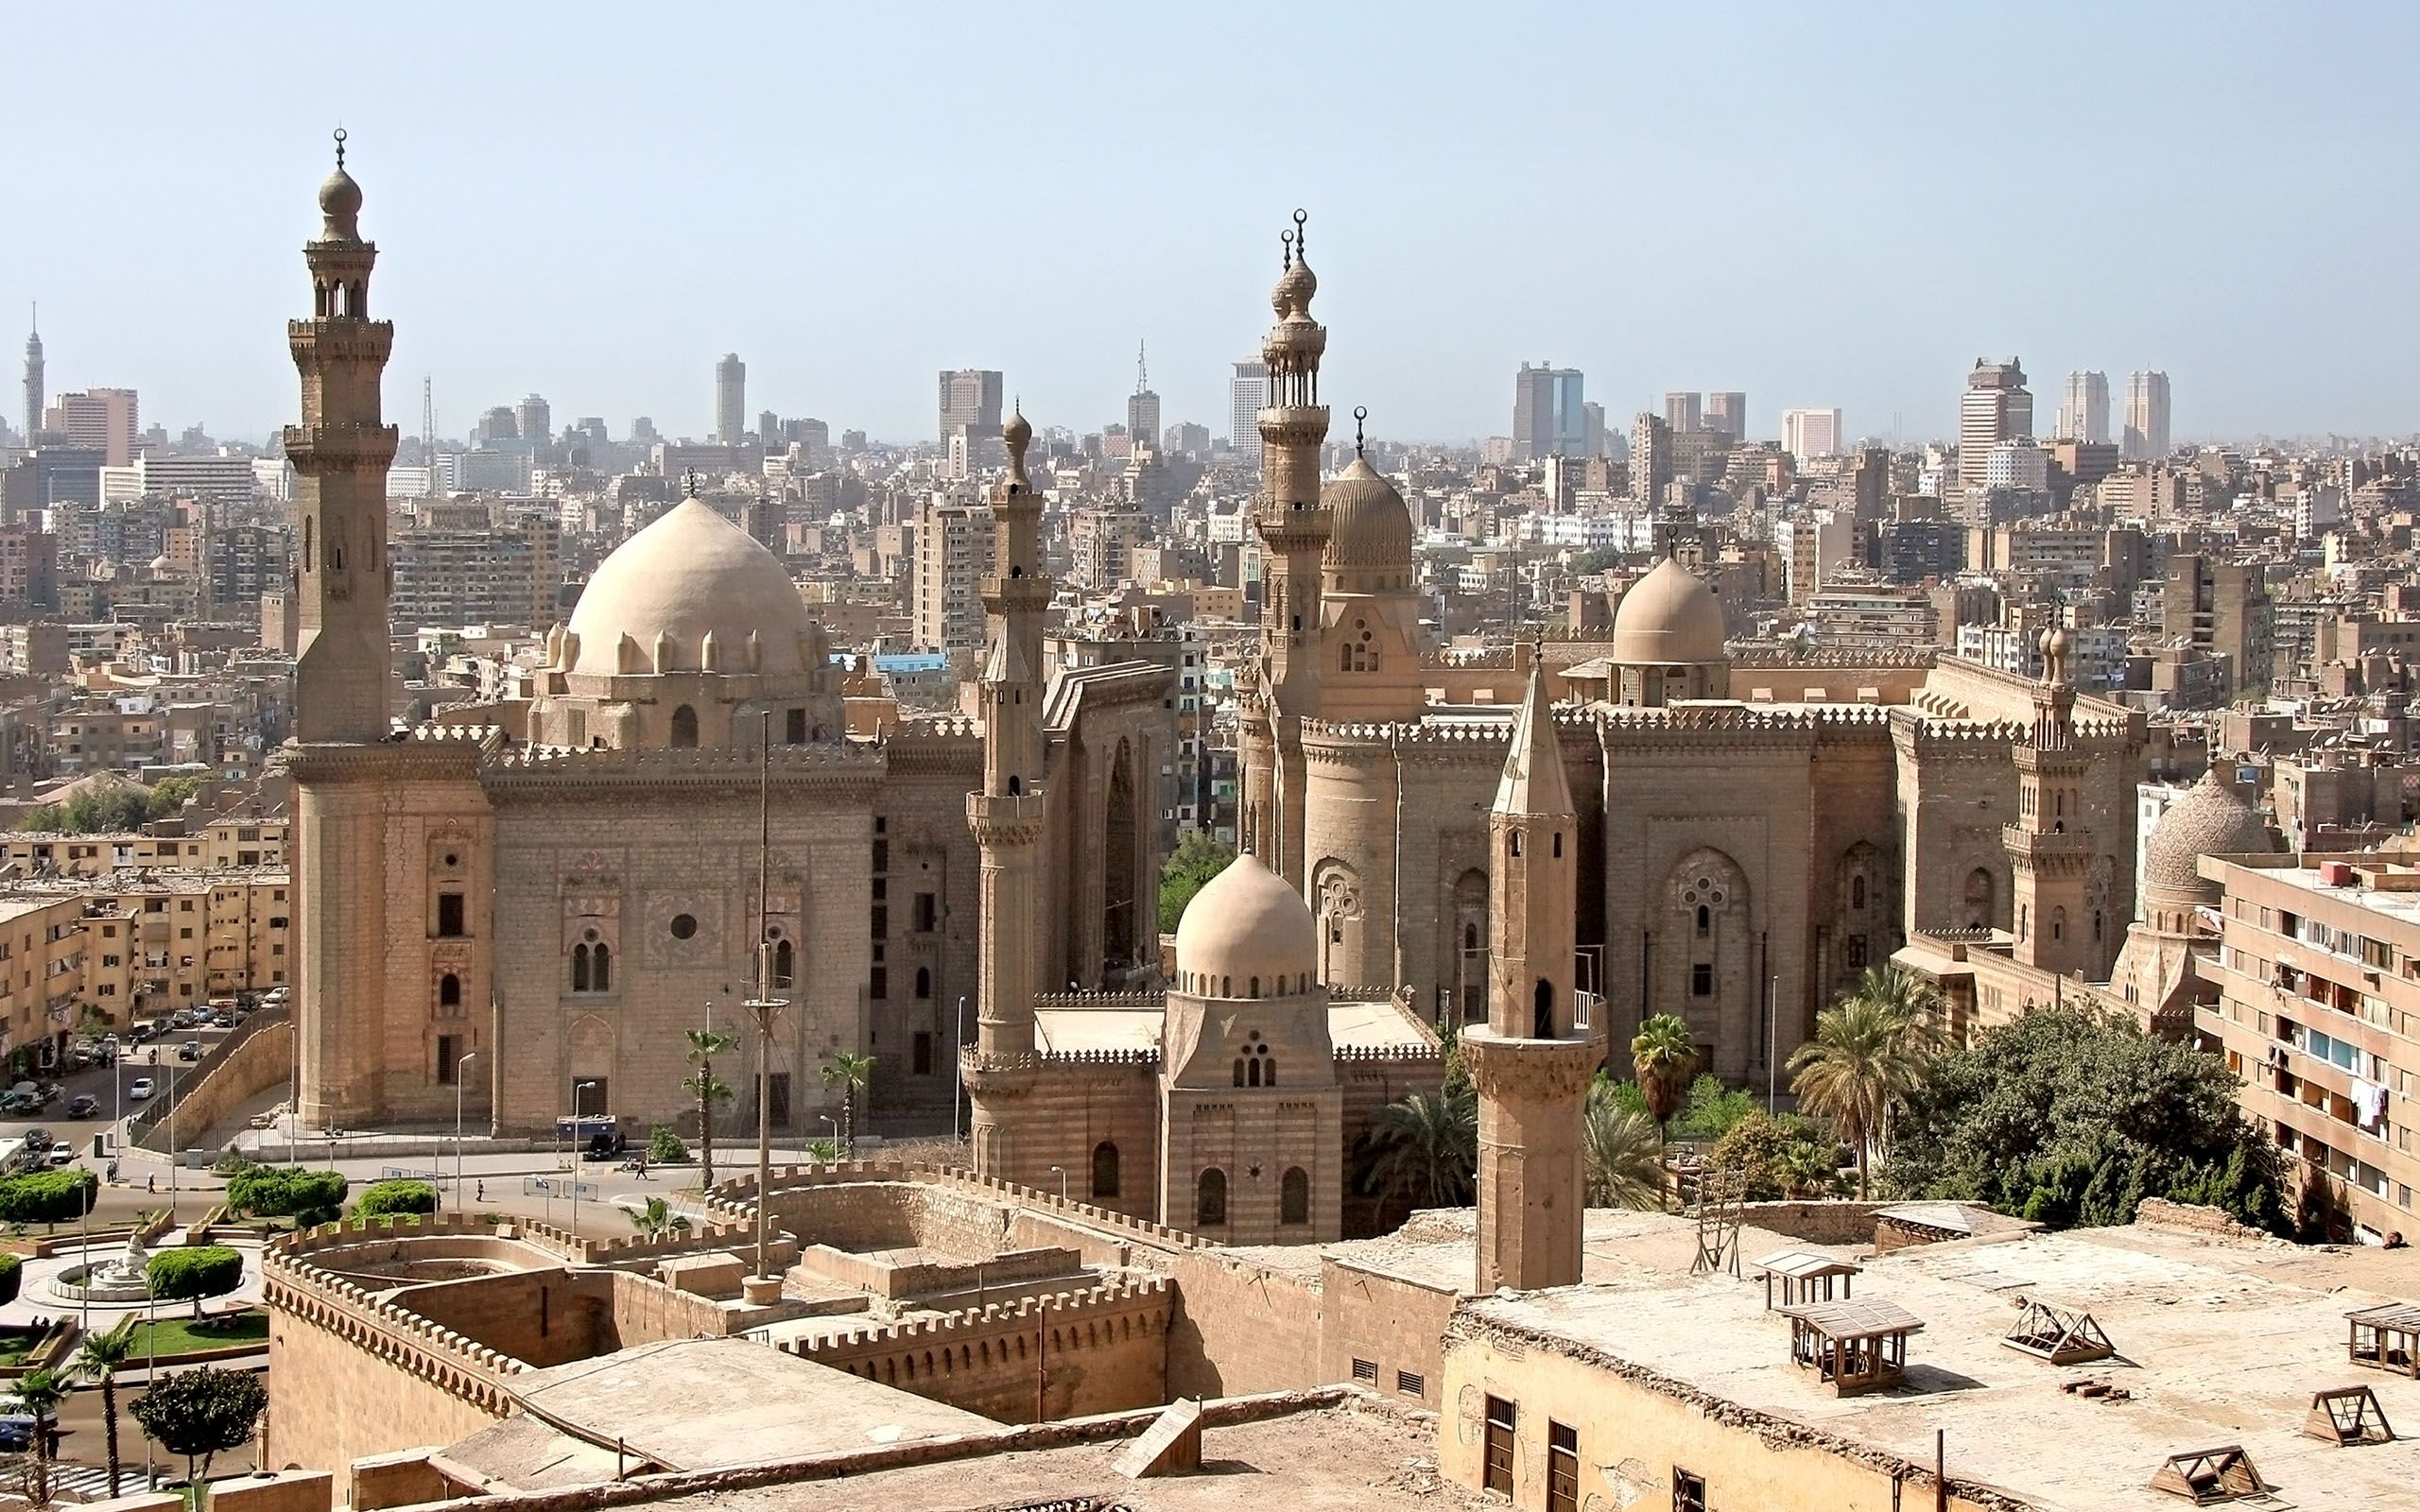 Cairo, Egypt's sprawling capital, is set on the Nile River